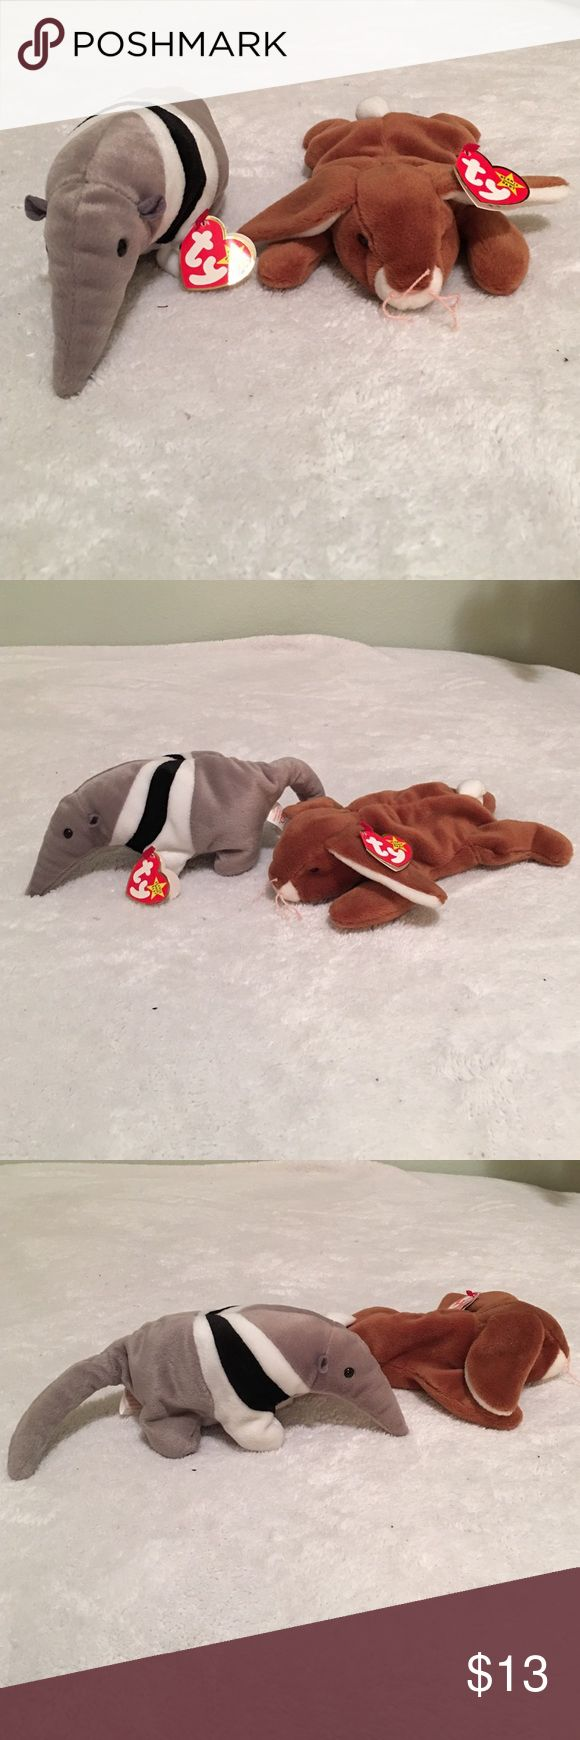 Beanie Babies! These adorable beanie babies (Ants and Ears) are looking for a new home! $5 each. Could also negotiate a price :) Beanie Babies Accessories